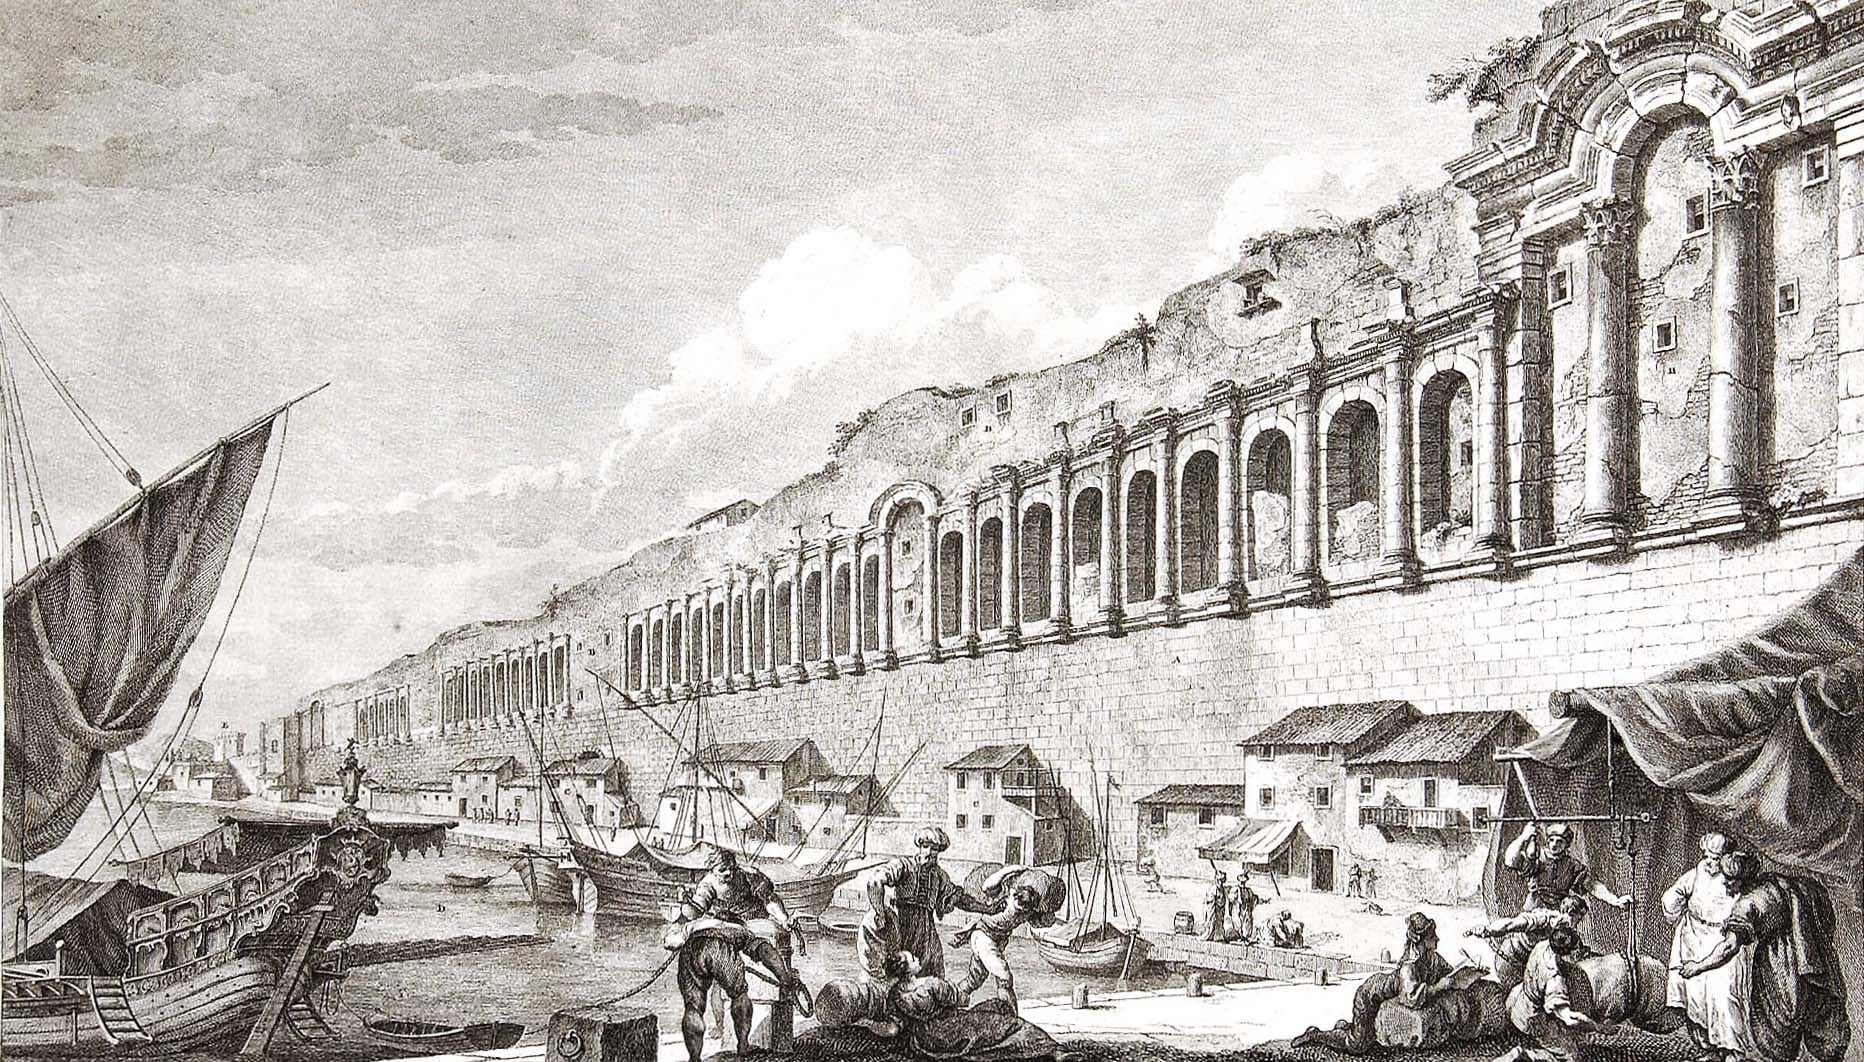 2 The remains of the sea front of Diocletian's Palace at Split. Engraving by Paolo Santini, Plate VII from Robert Adam's Ruins of the Palace of the Emperor Diocletian at Spalatro in Dalmatia (1764)